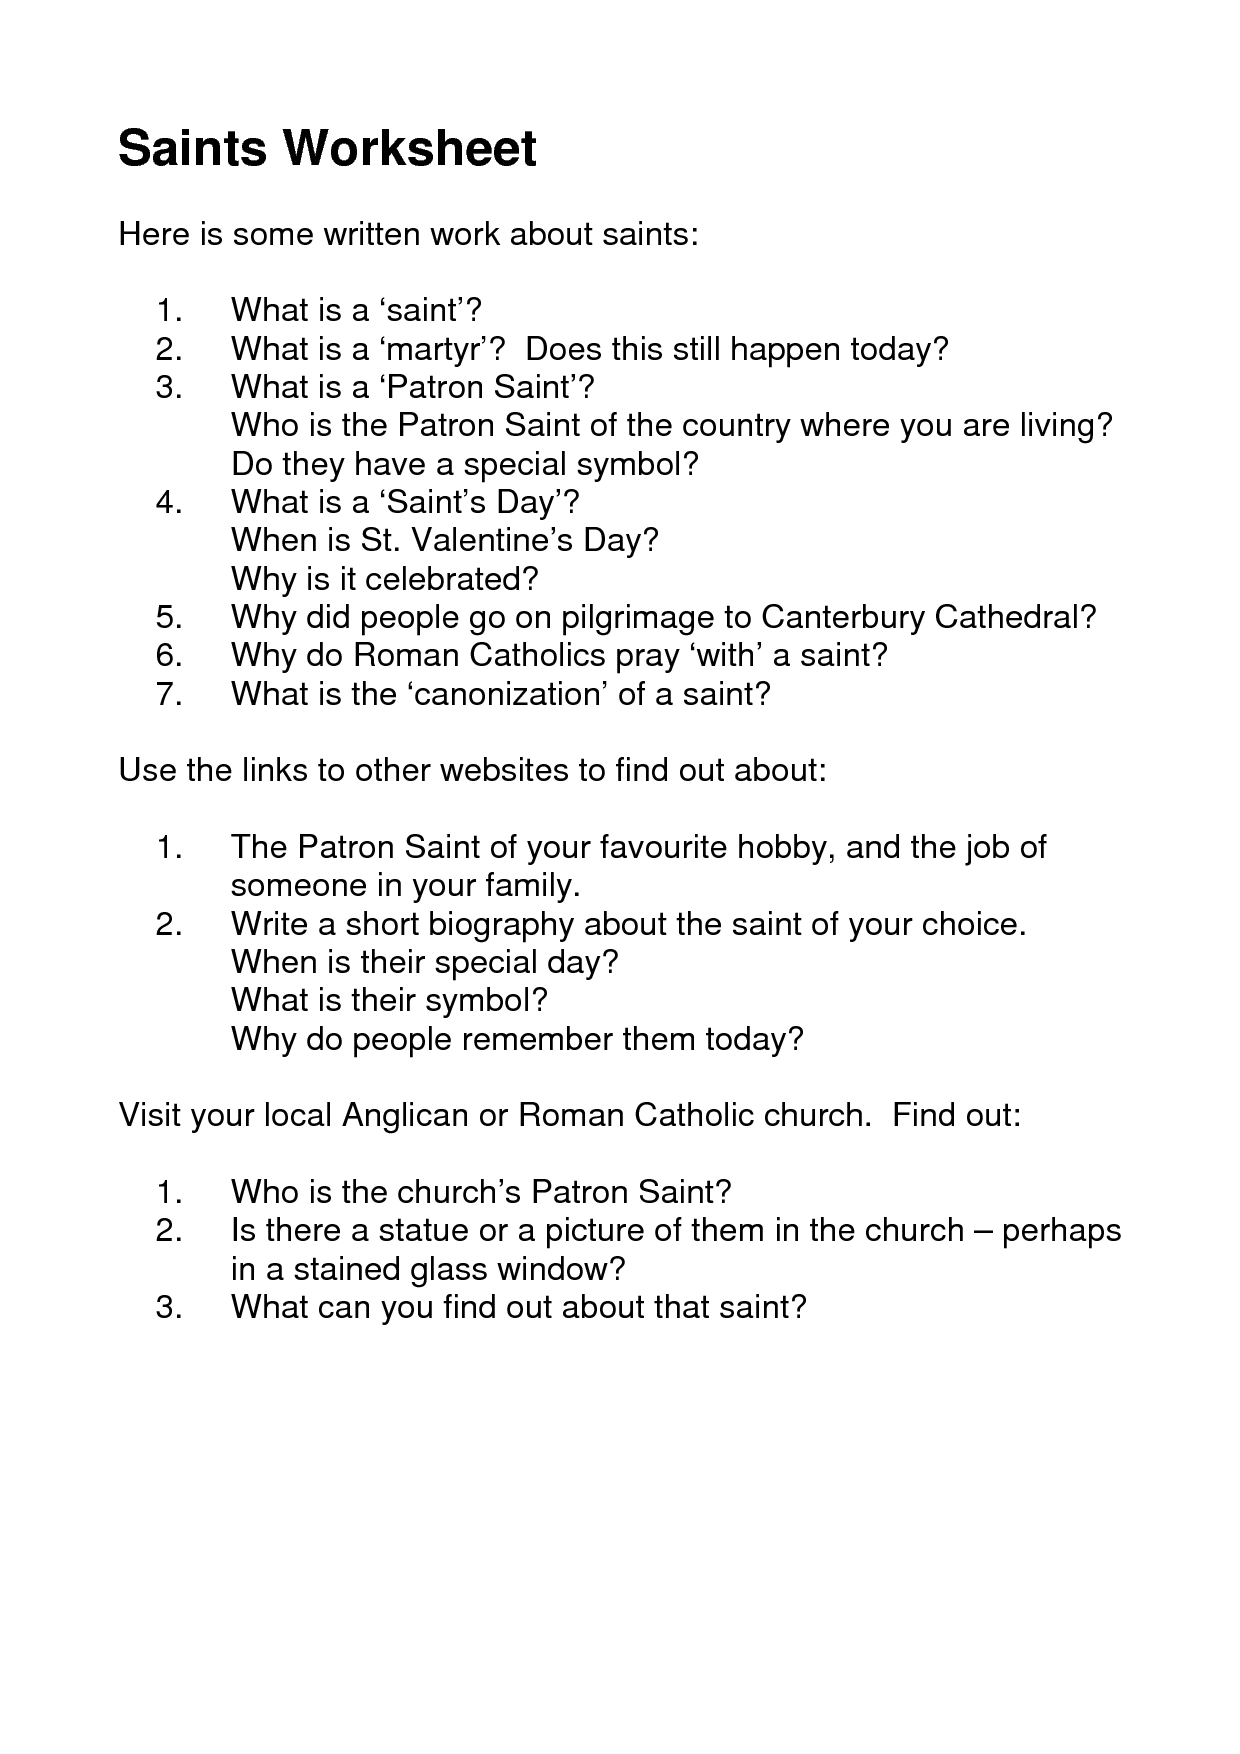 34 Awesome worksheets for all saints day images   Handwriting worksheets [ 1754 x 1240 Pixel ]